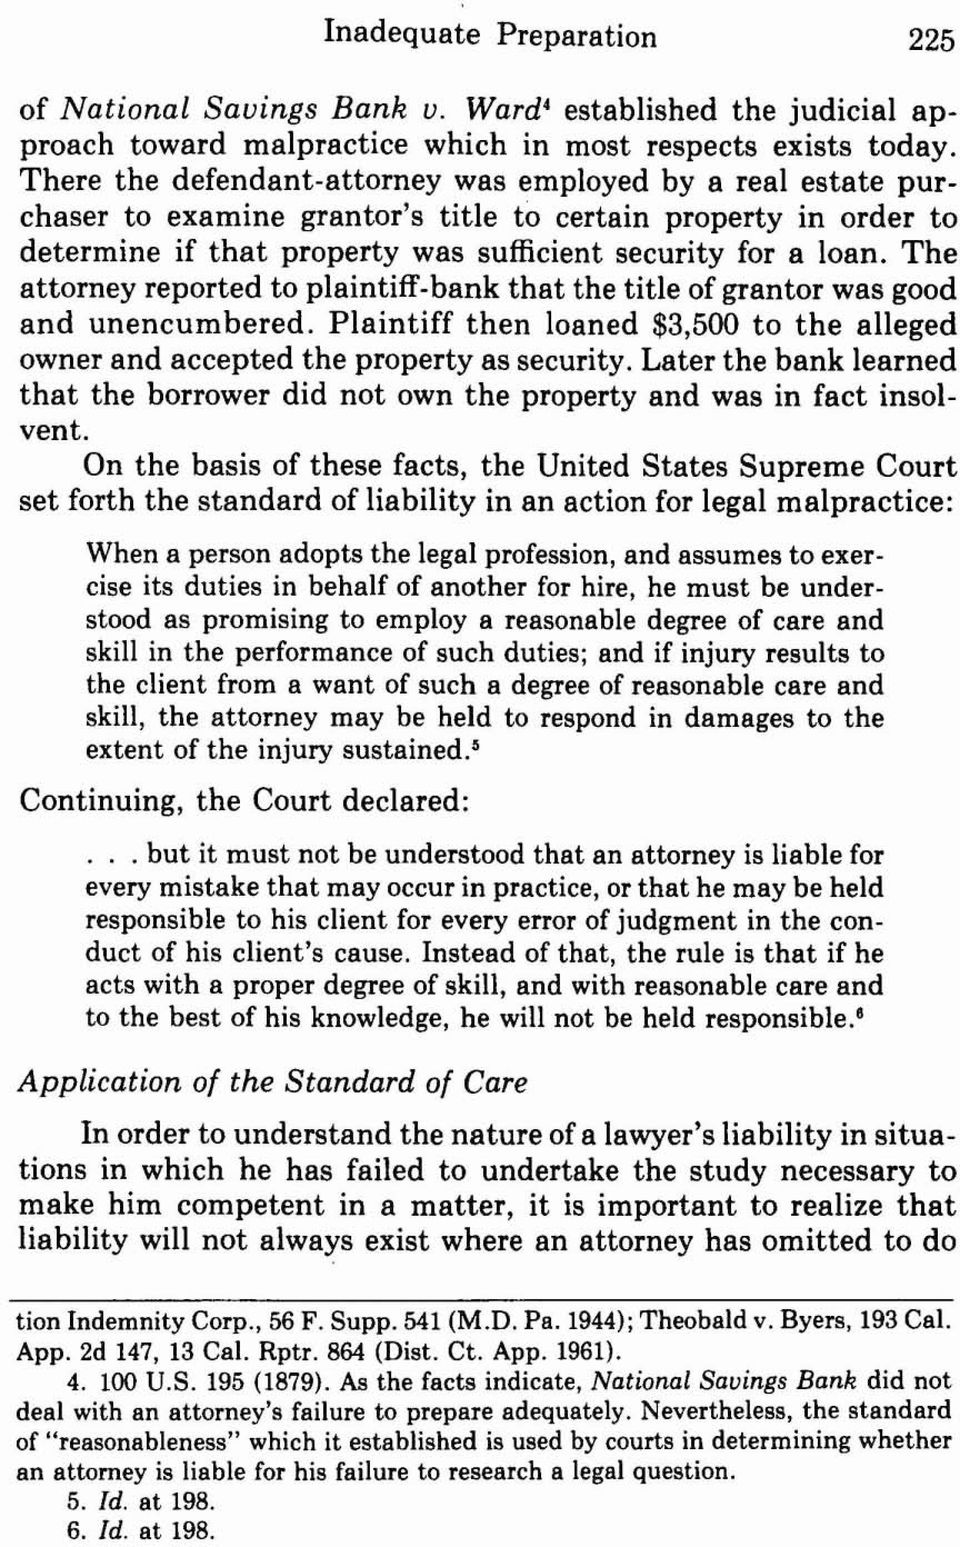 The attorney reported to plaintiff-bank that the title of grantor was good and unencumbered. Plaintiff then loaned $3,500 to the alleged owner and accepted the property as security.